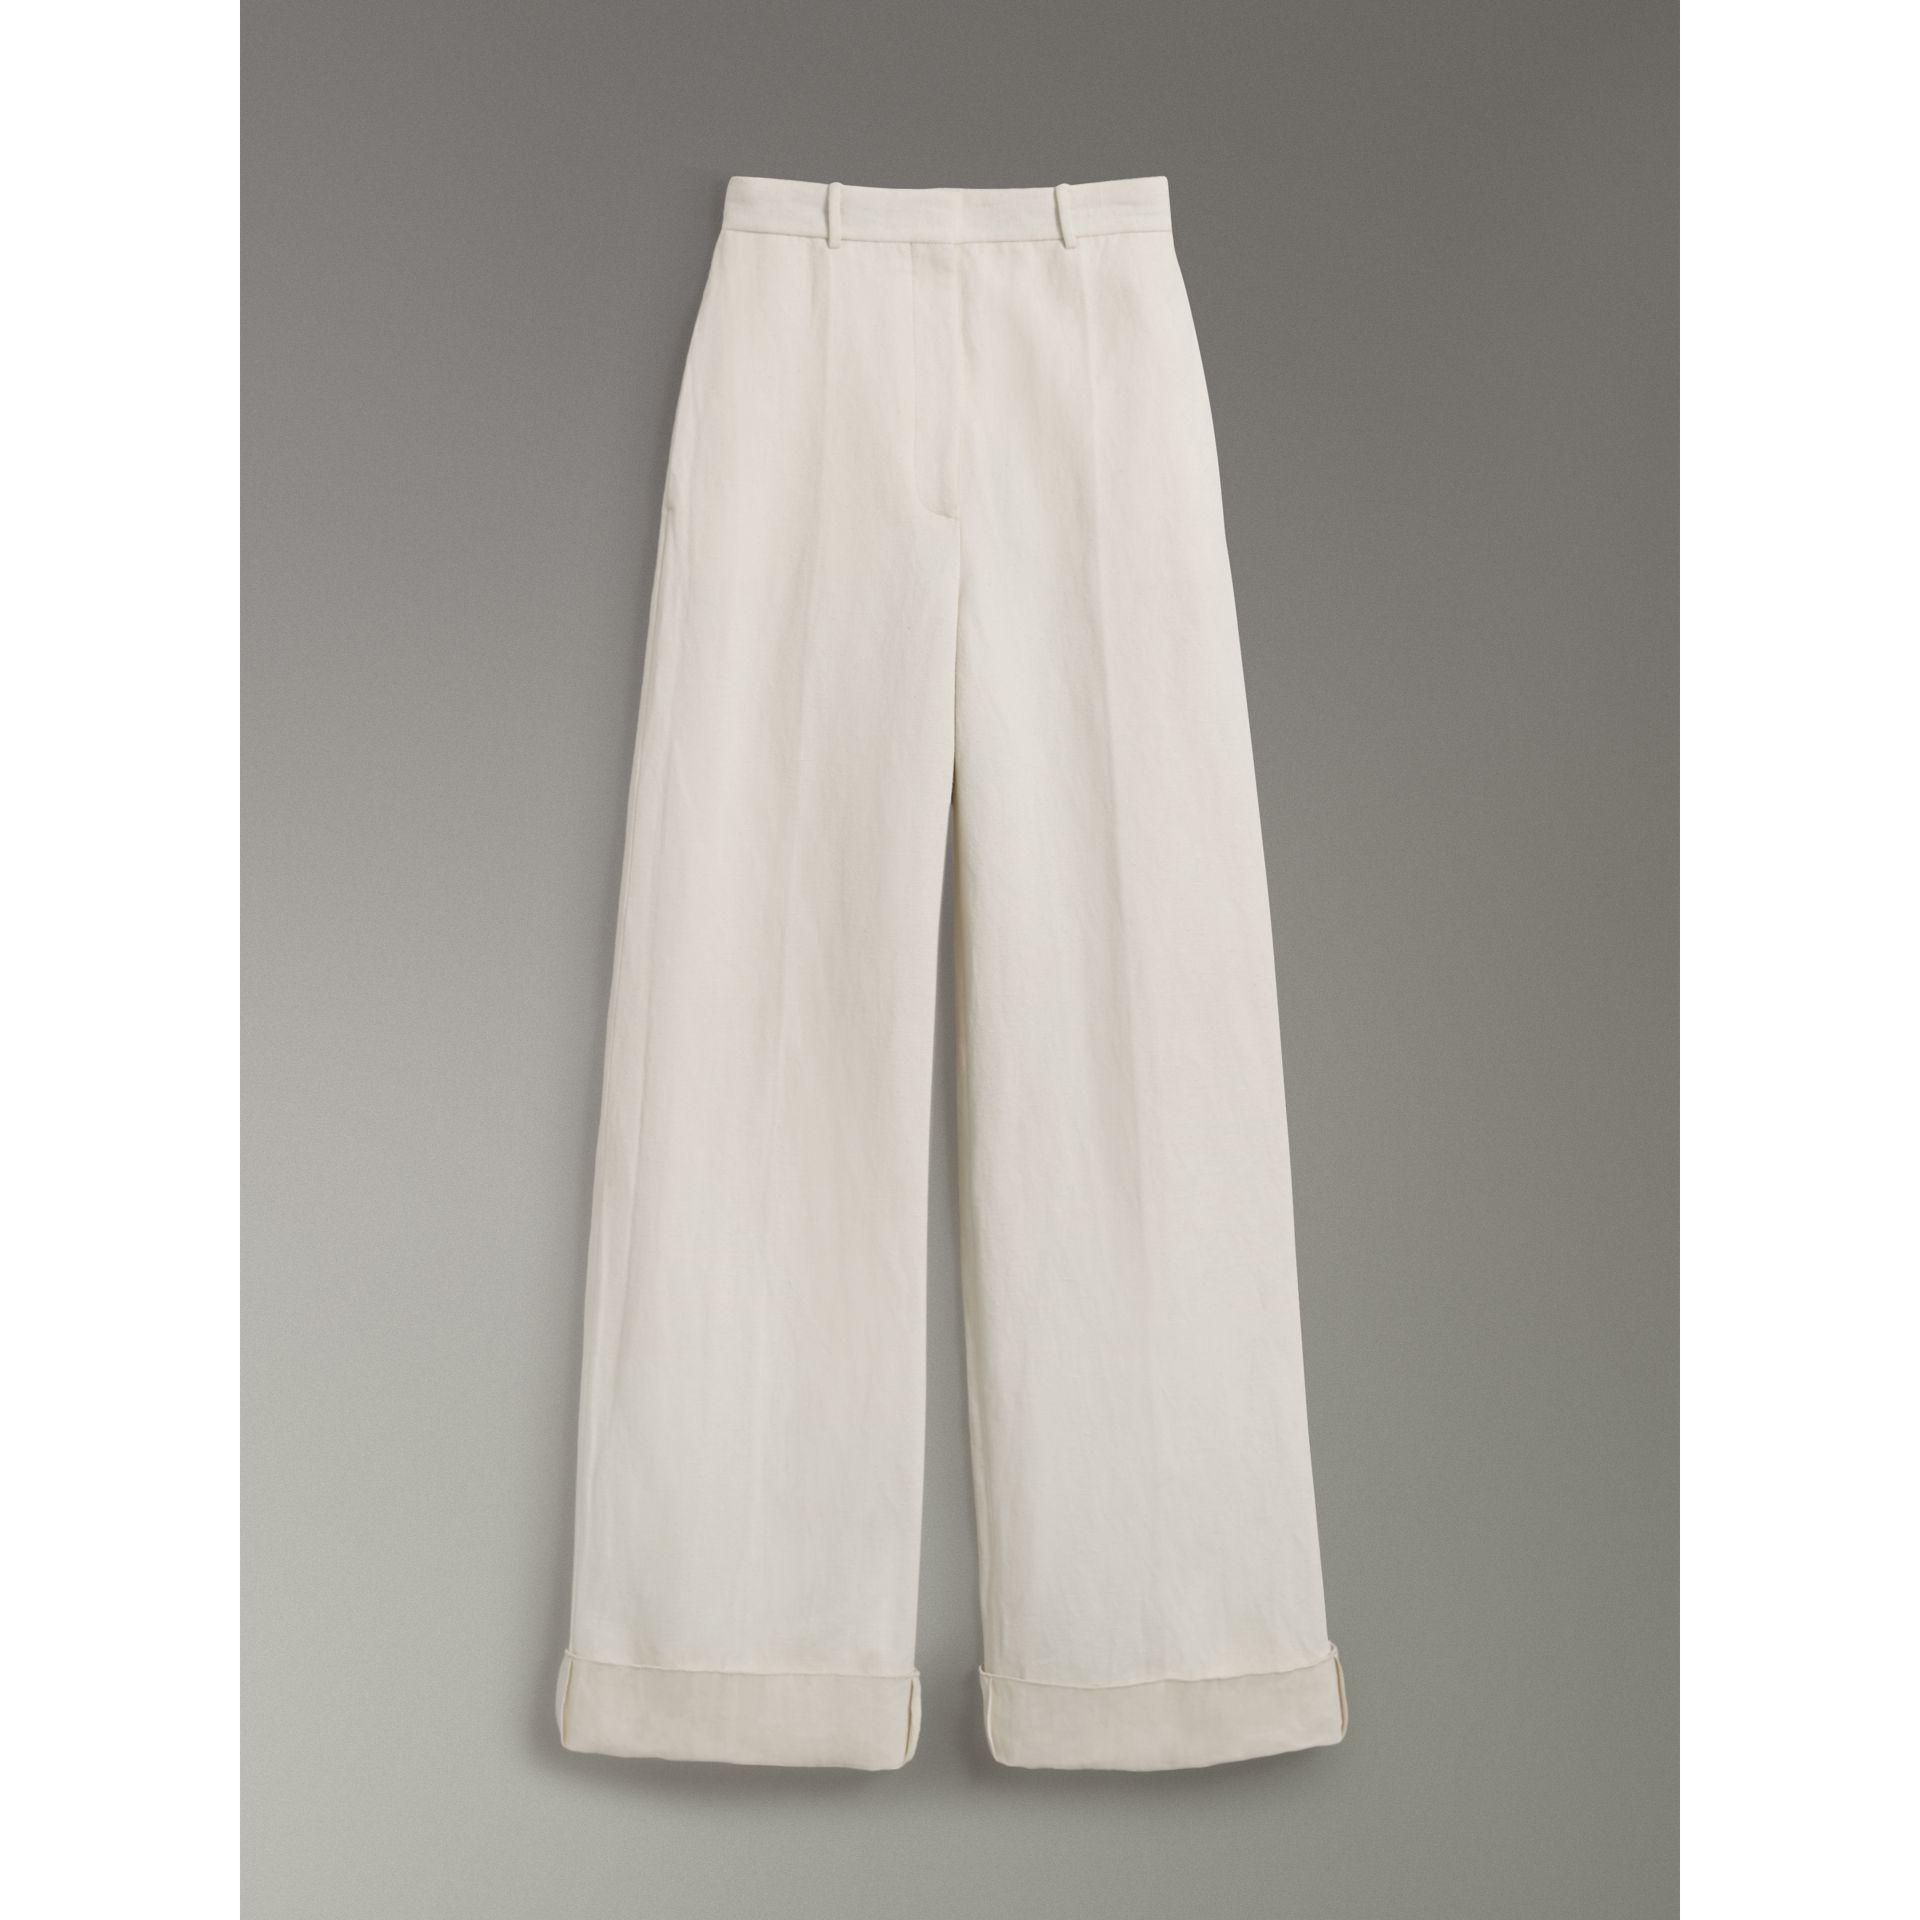 Cotton Linen Canvas Wide-leg Trousers in Off White - Women | Burberry - gallery image 3